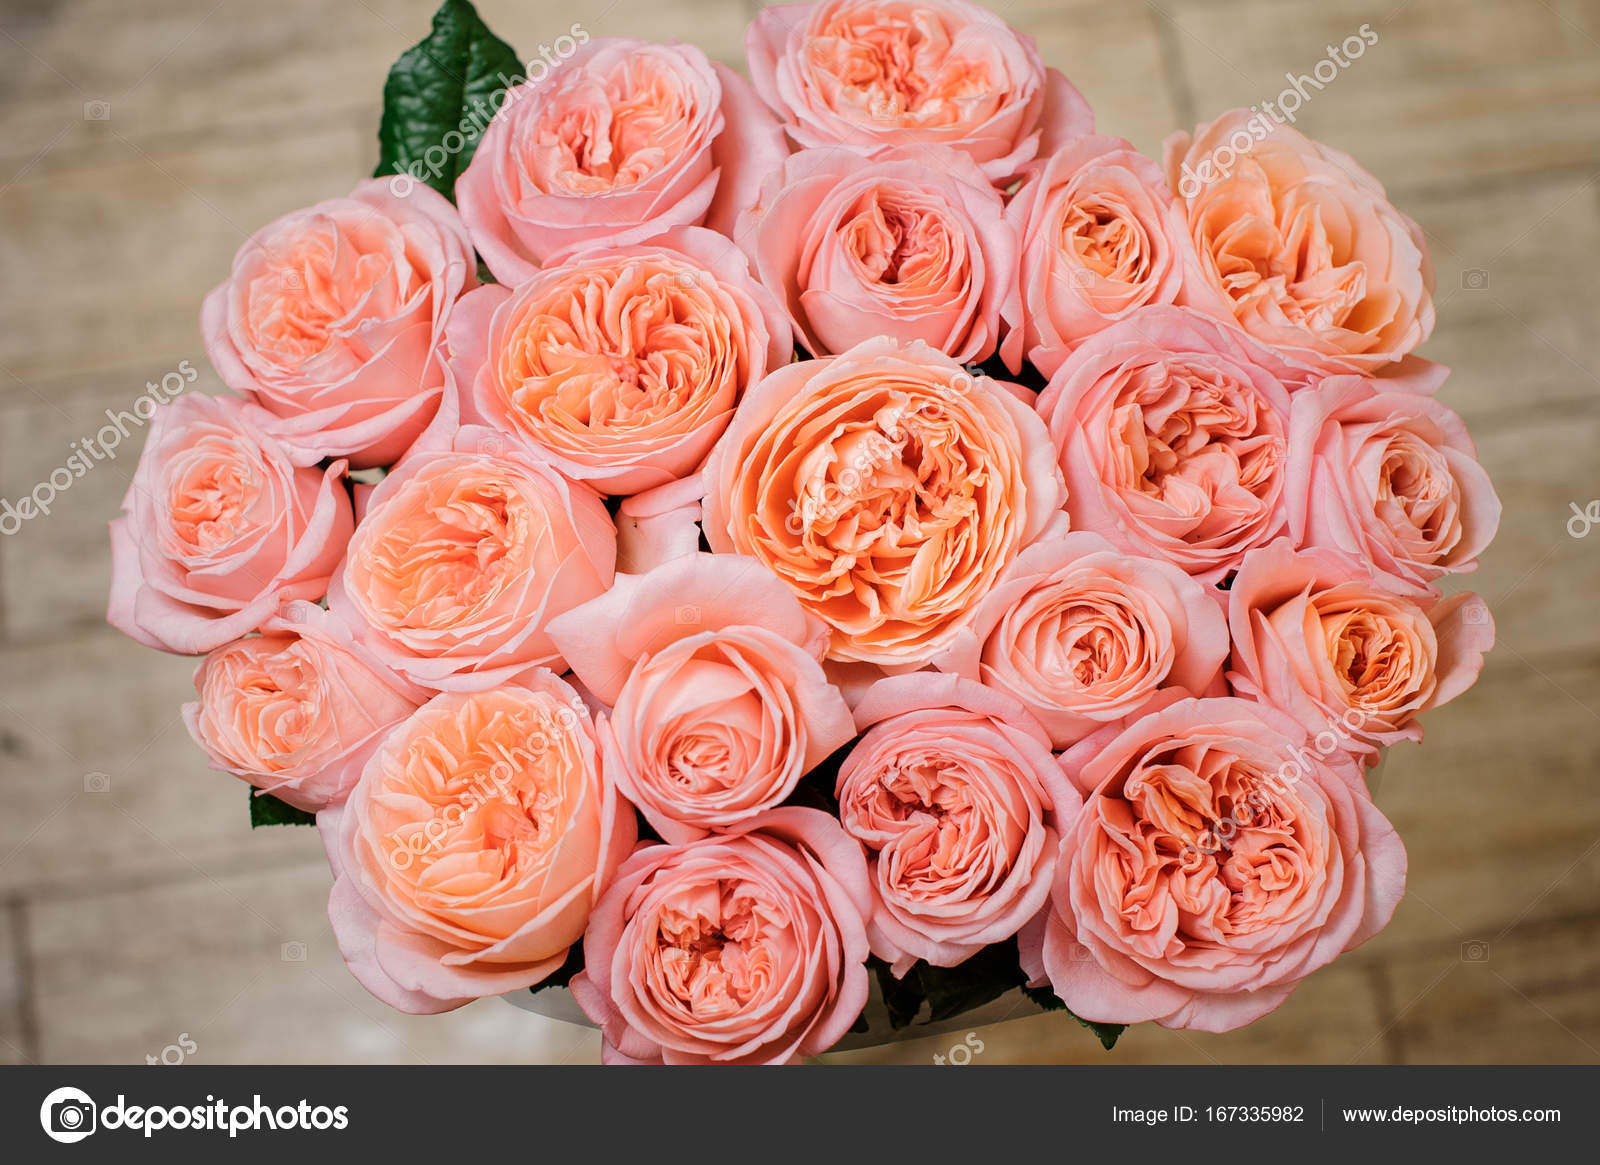 Very beautiful bouquet of bright pink flowers stock photo very beautiful bouquet of bright pink flowers stock photo izmirmasajfo